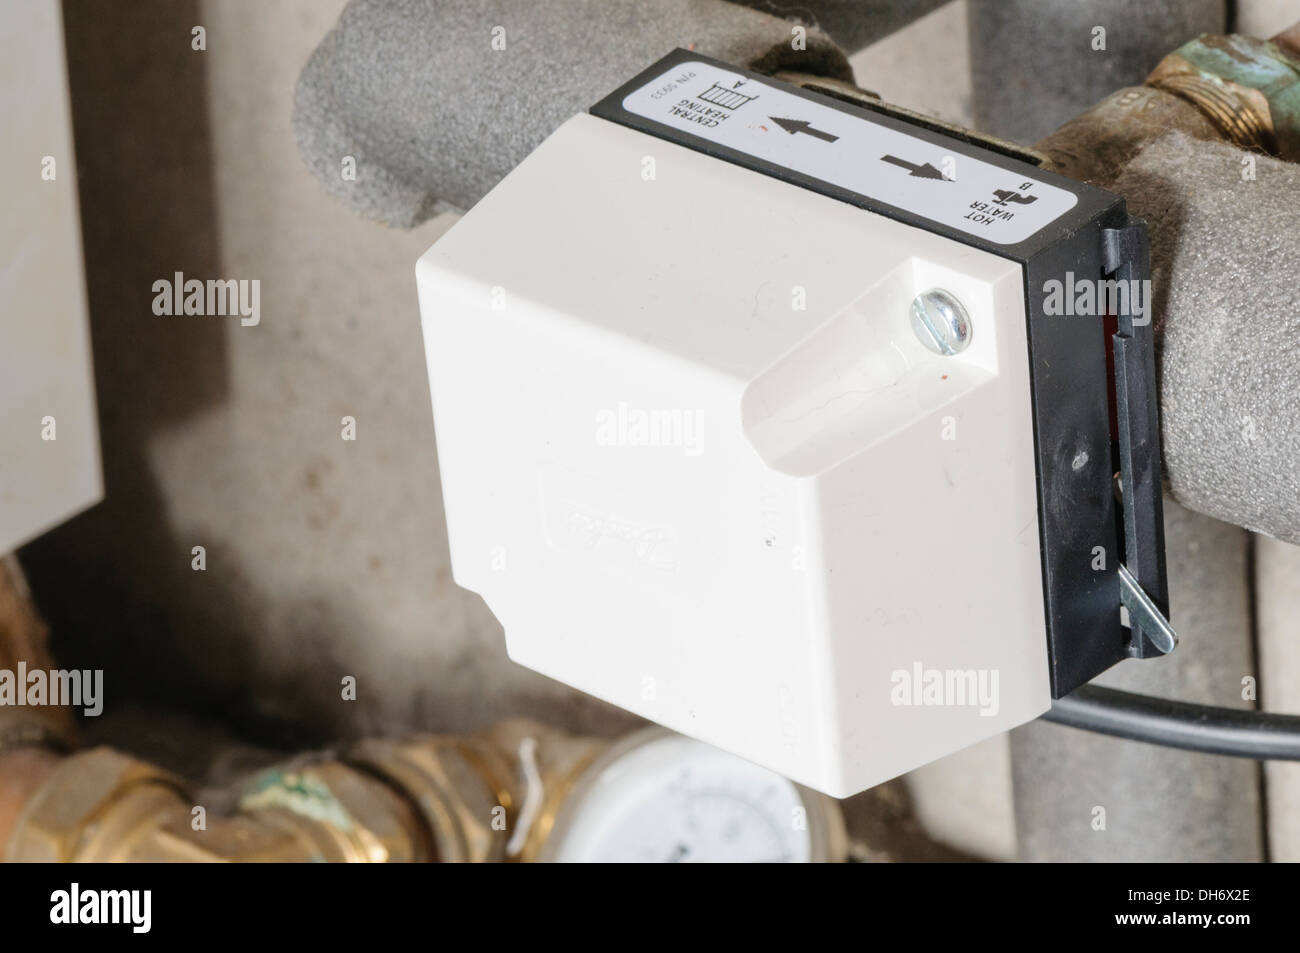 Danfoss two-port valve on a hot water central heating system Stock ...